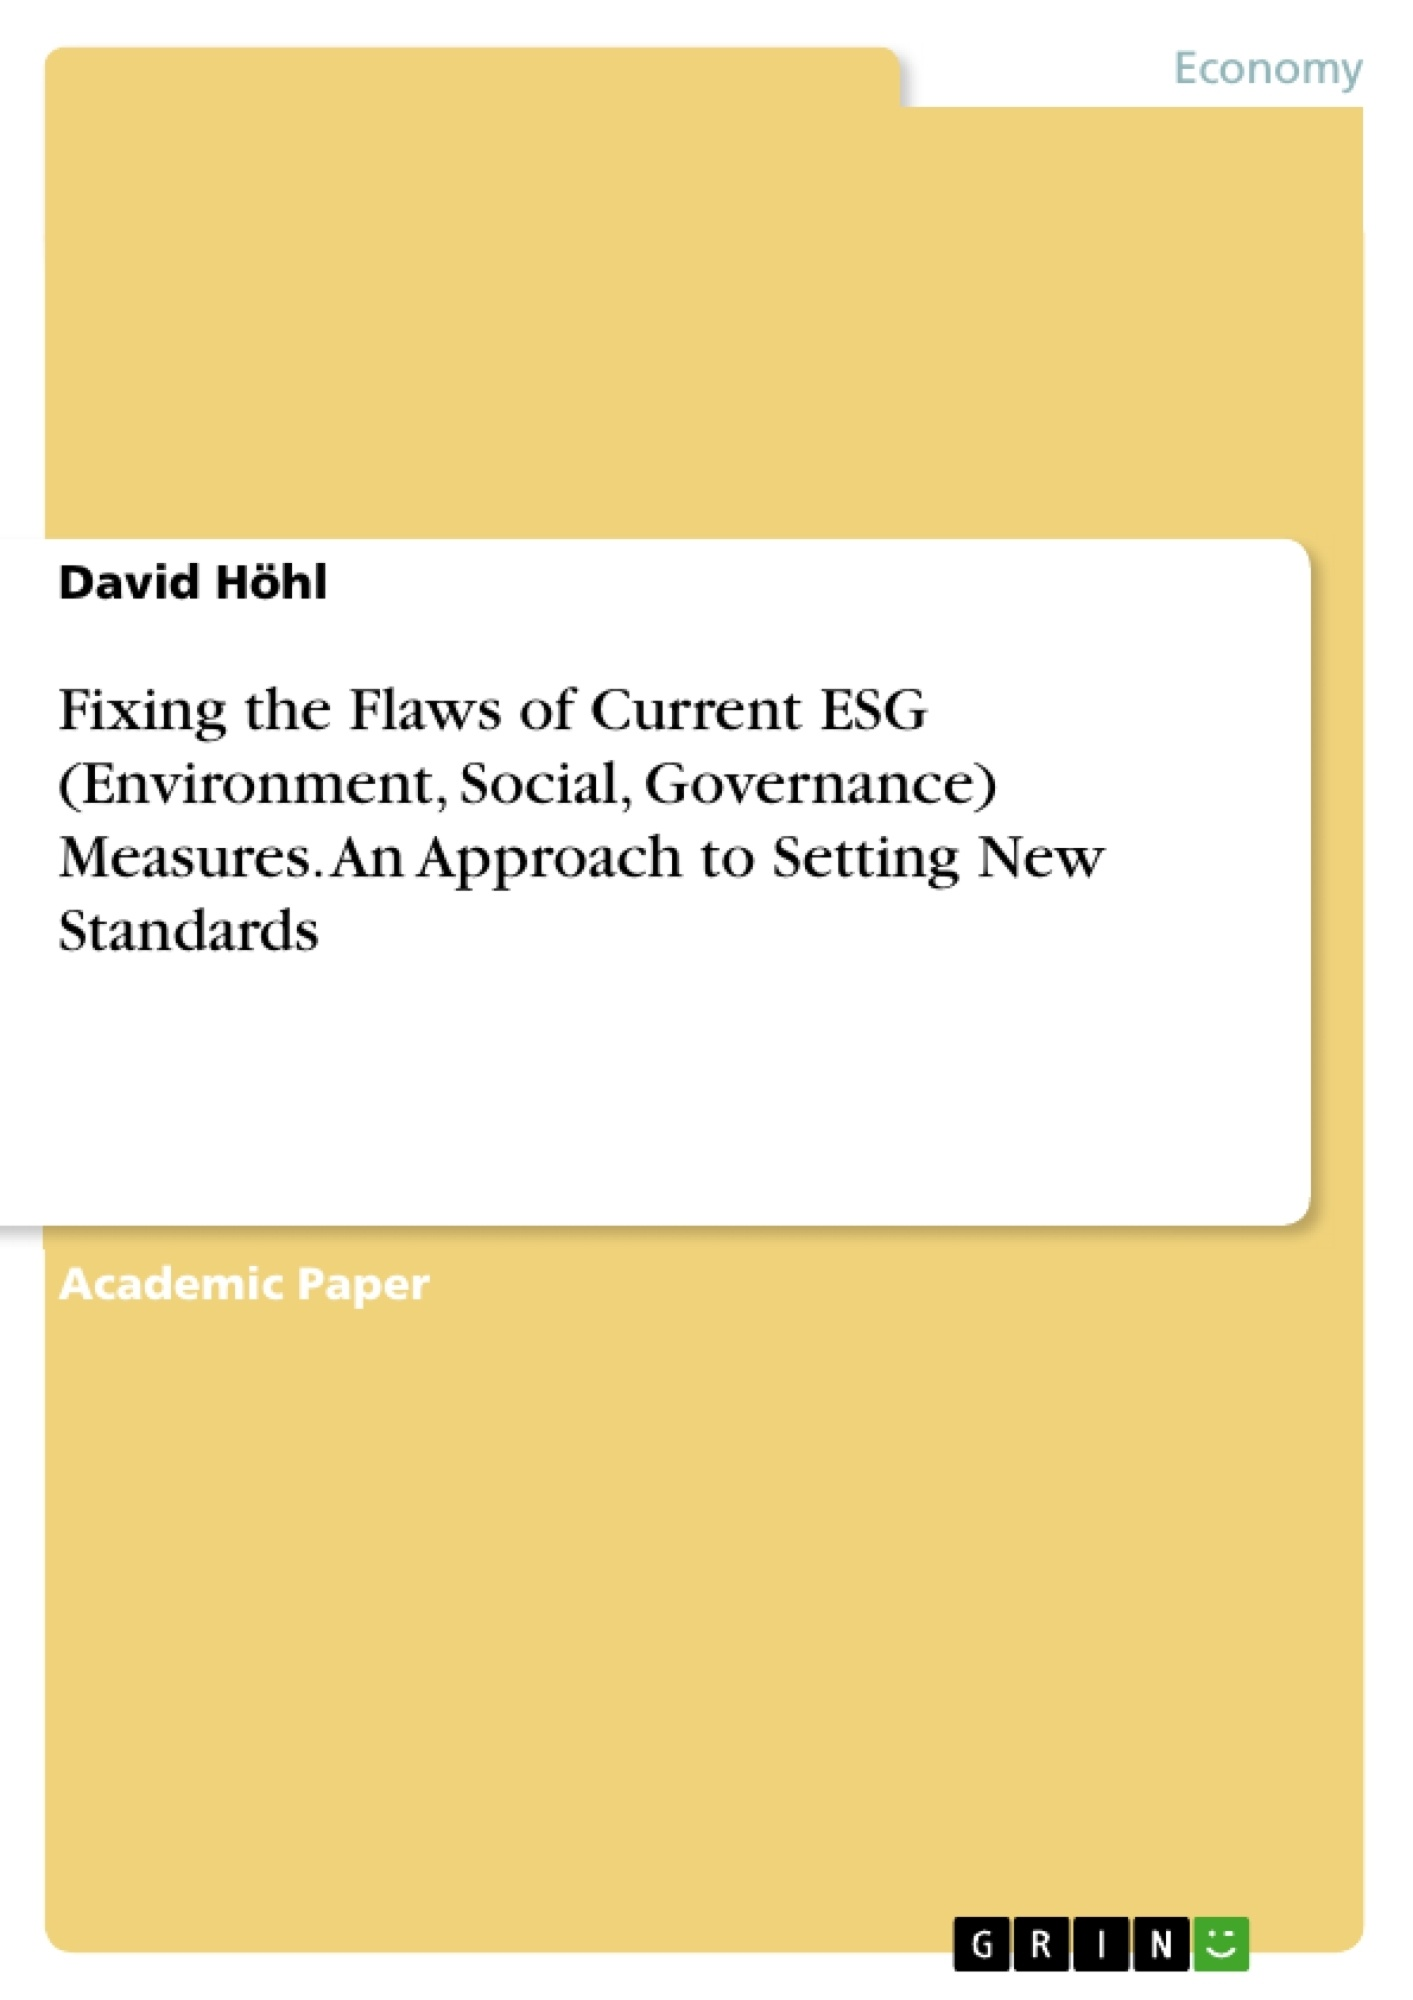 Title: Fixing the Flaws of Current ESG (Environment, Social, Governance) Measures. An Approach to Setting New Standards